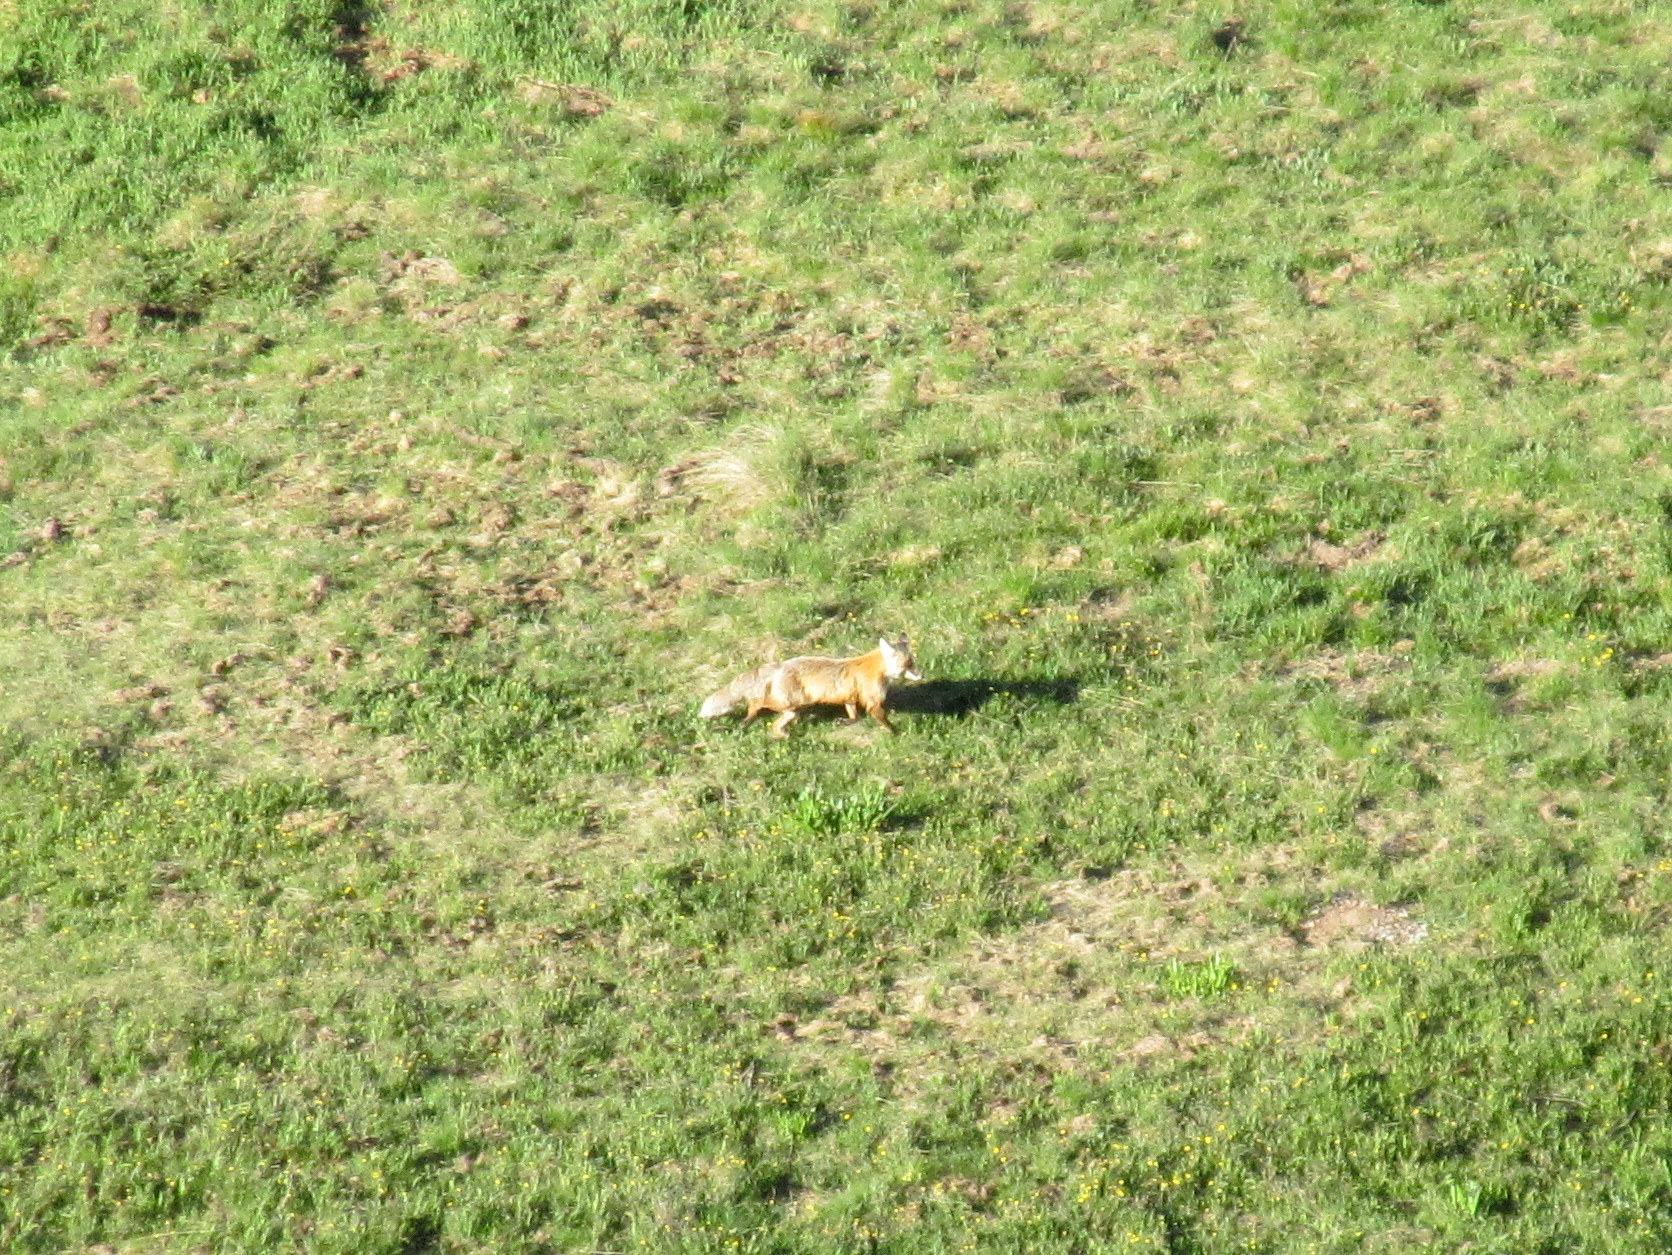 Photo: Fox along Nellie Creek